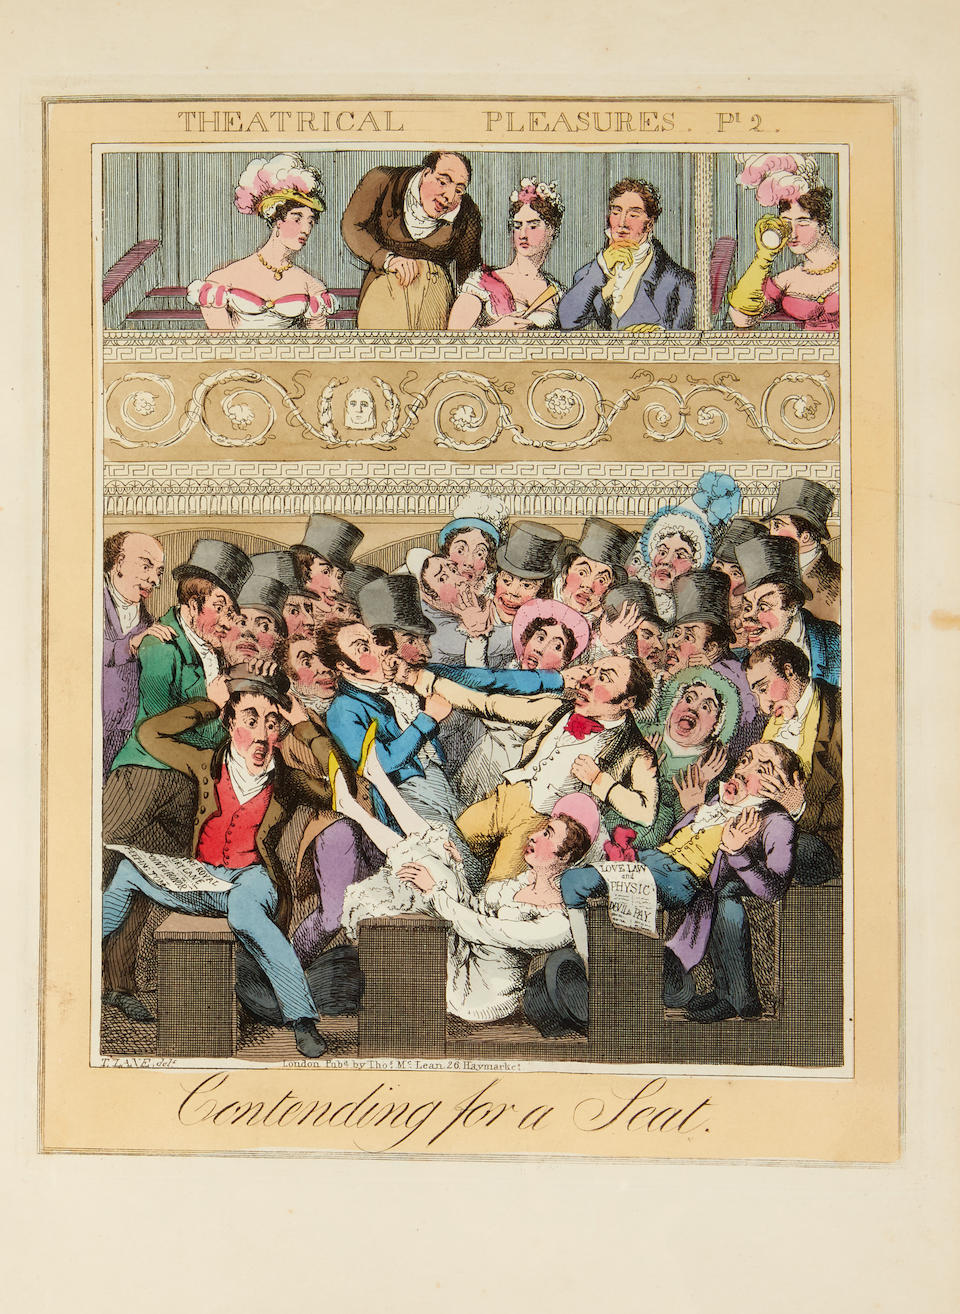 LANE, THEODORE. 1800-1828. Theatrical Pleasures. London: Thomas McLean, n.d. [c.1825].